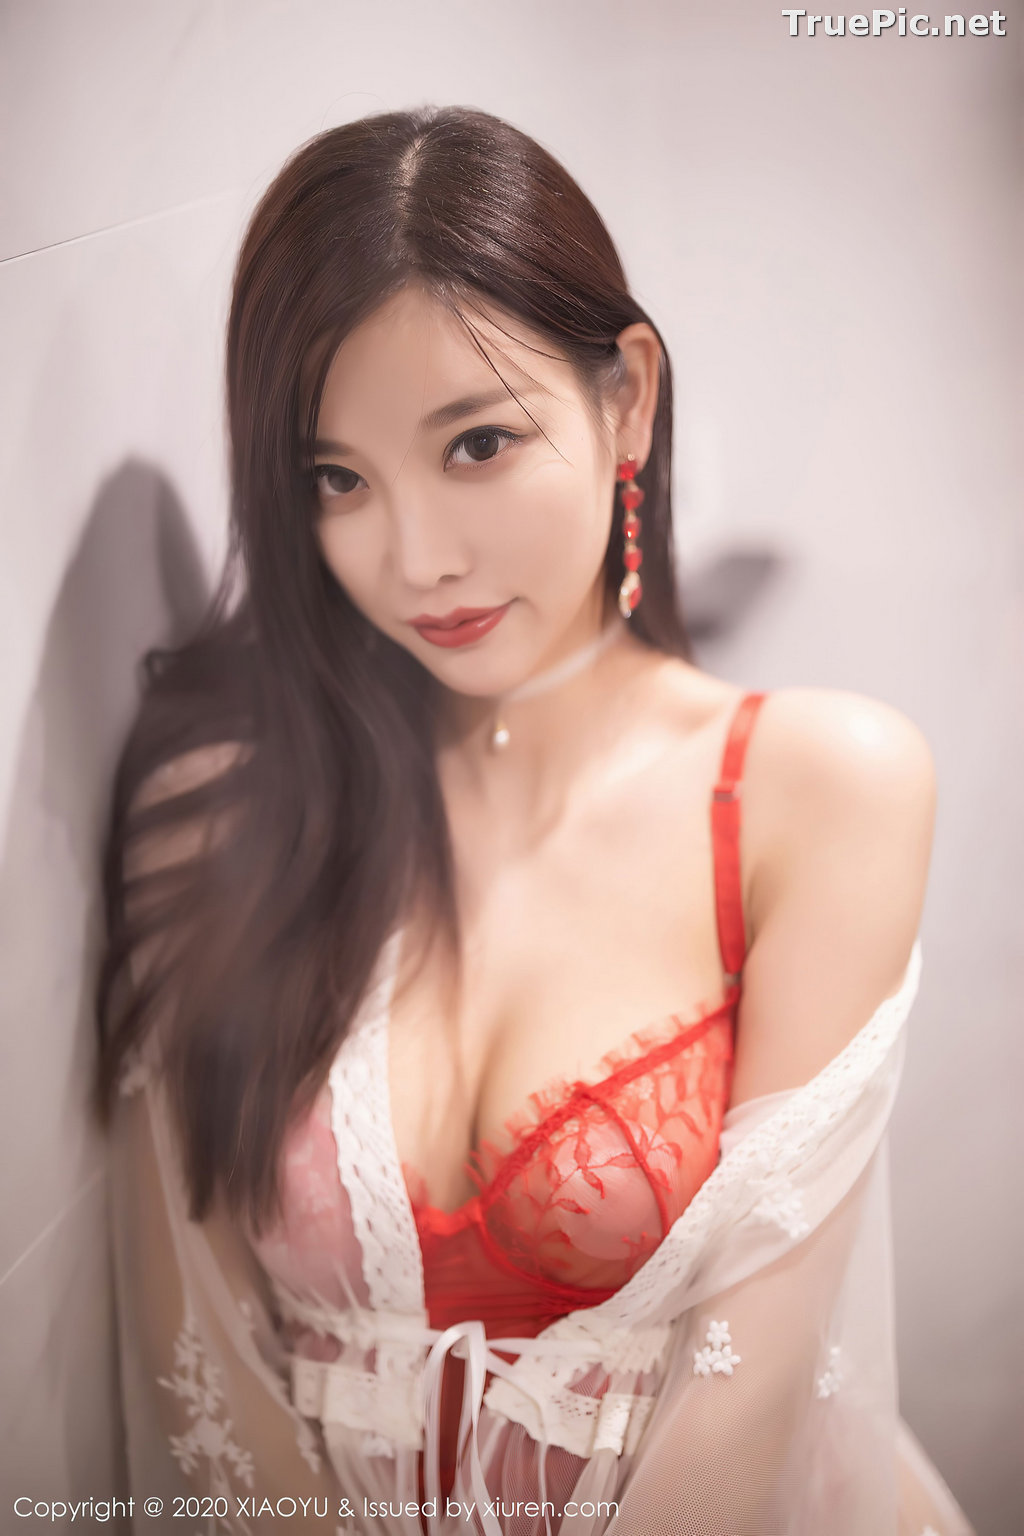 Image XiaoYu Vol.413 - Chinese Model - Yang Chen Chen (杨晨晨sugar)- Red Crystal-clear Lingerie - TruePic.net - Picture-2